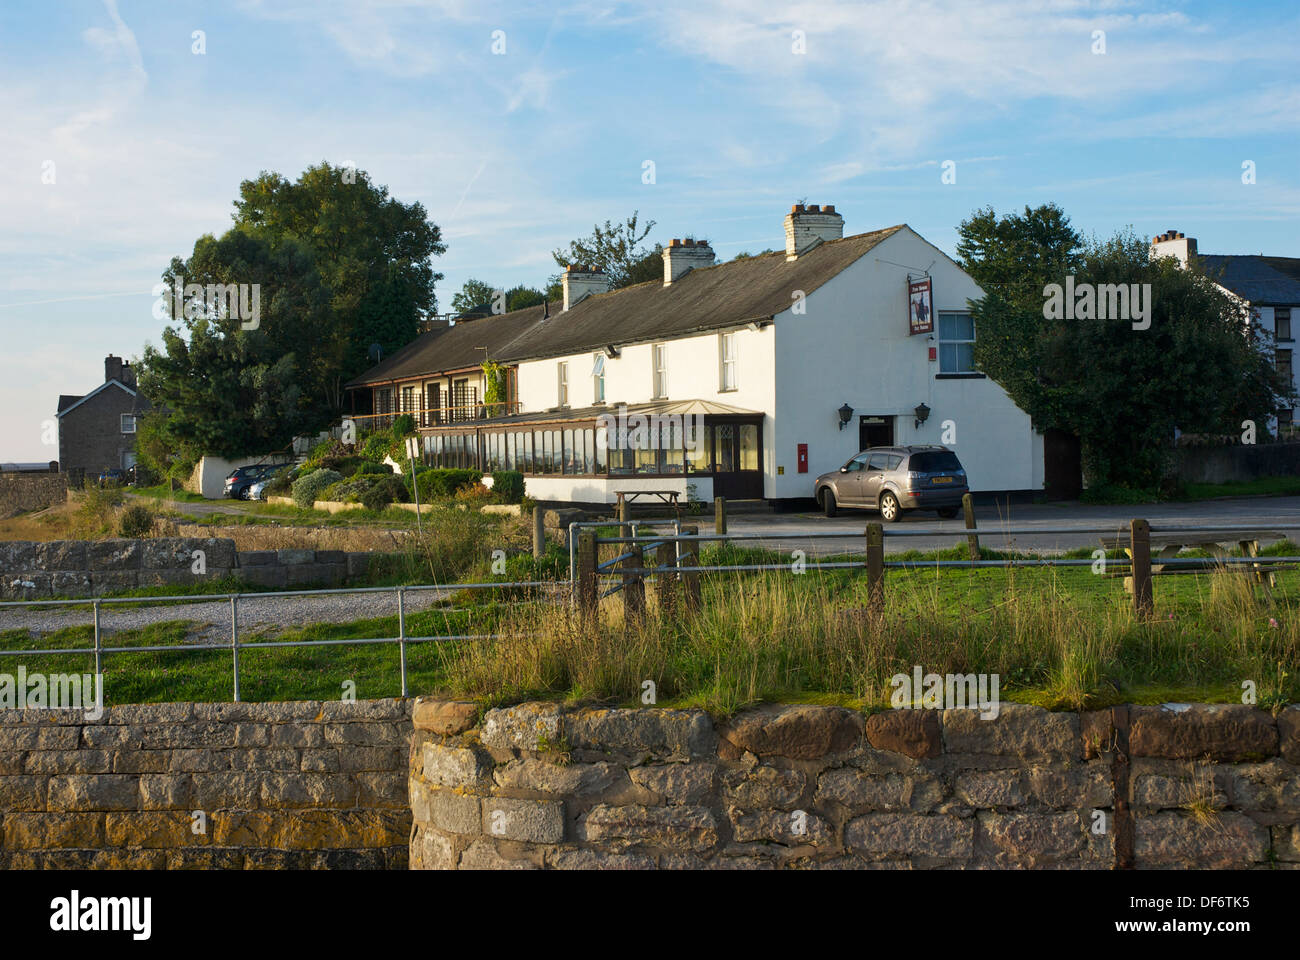 The Bay Horse pub, hotel & restaurant, at Canal End, Ulverston, Cumbria, England UK - Stock Image